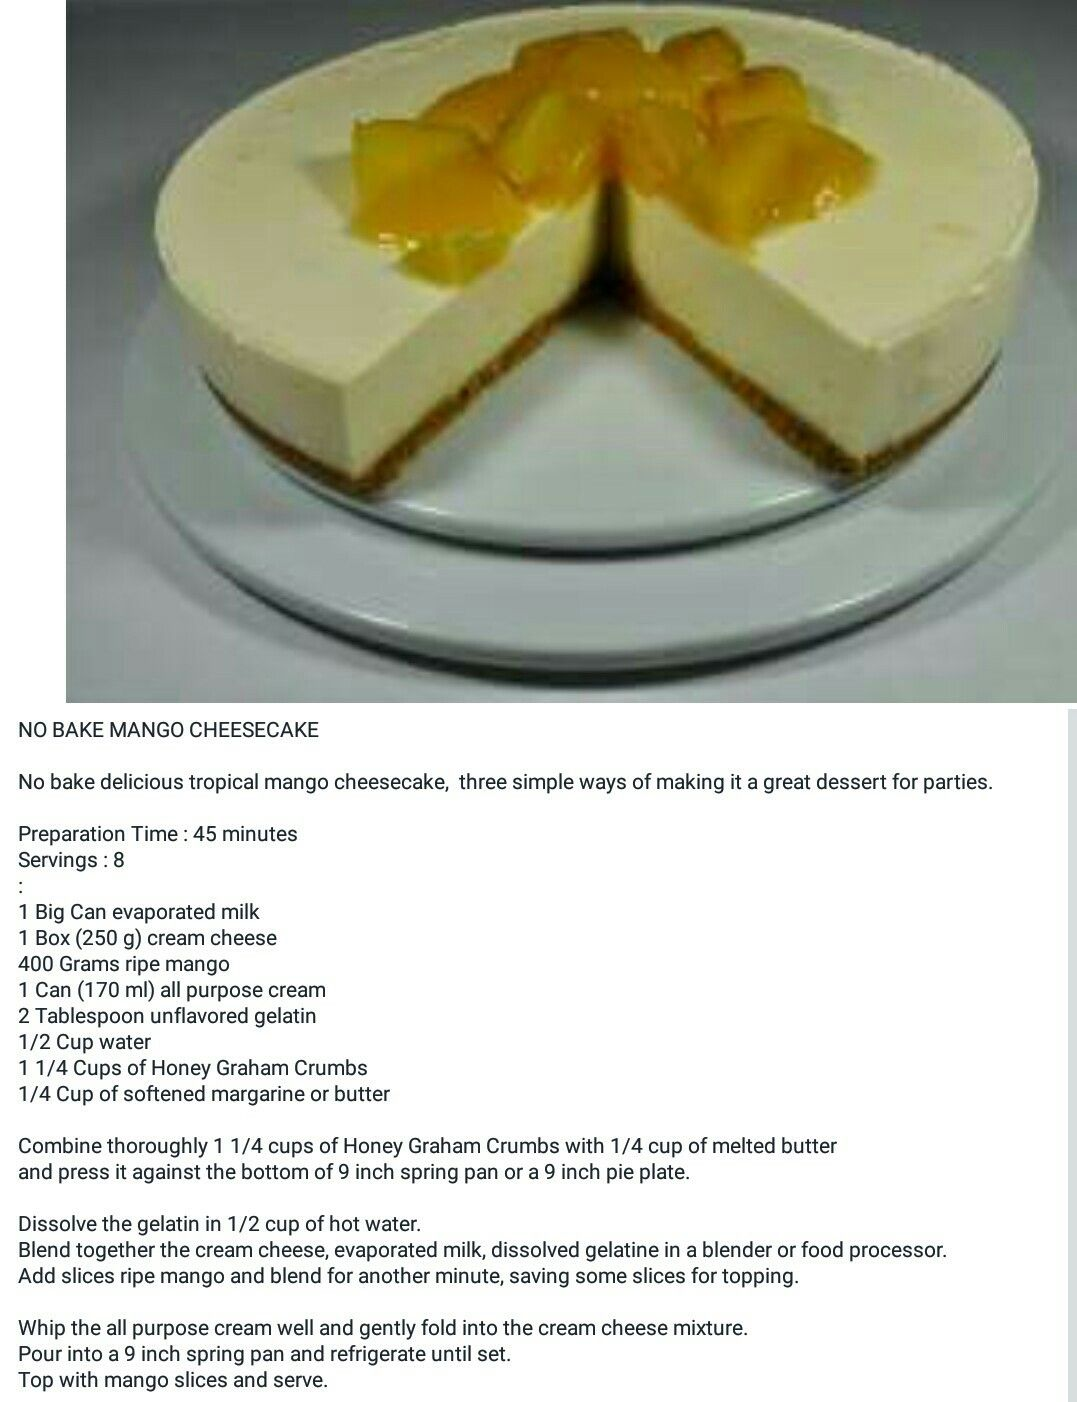 Pin By Brenda Van Zyl On Sweet Treats Mango Cheesecake Great Desserts Desserts